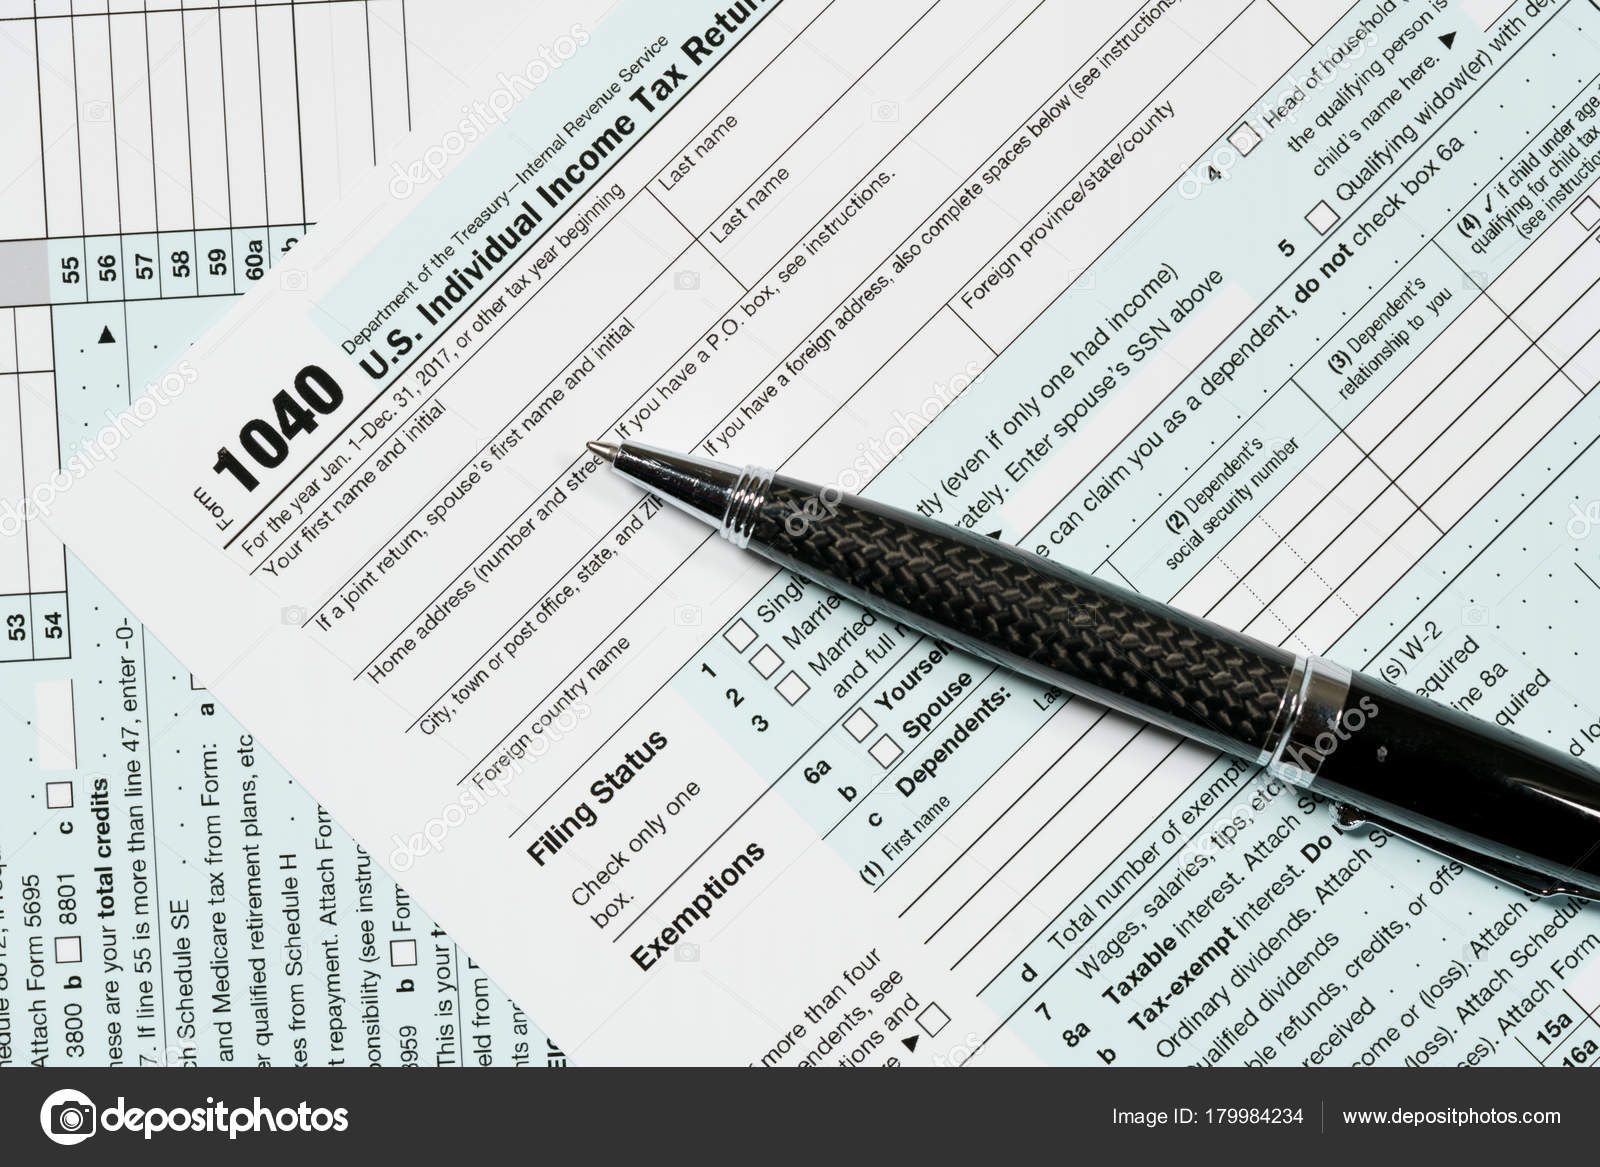 Pen laying on 2017 IRS form 1040 — Stock Photo © steveheap #179984234